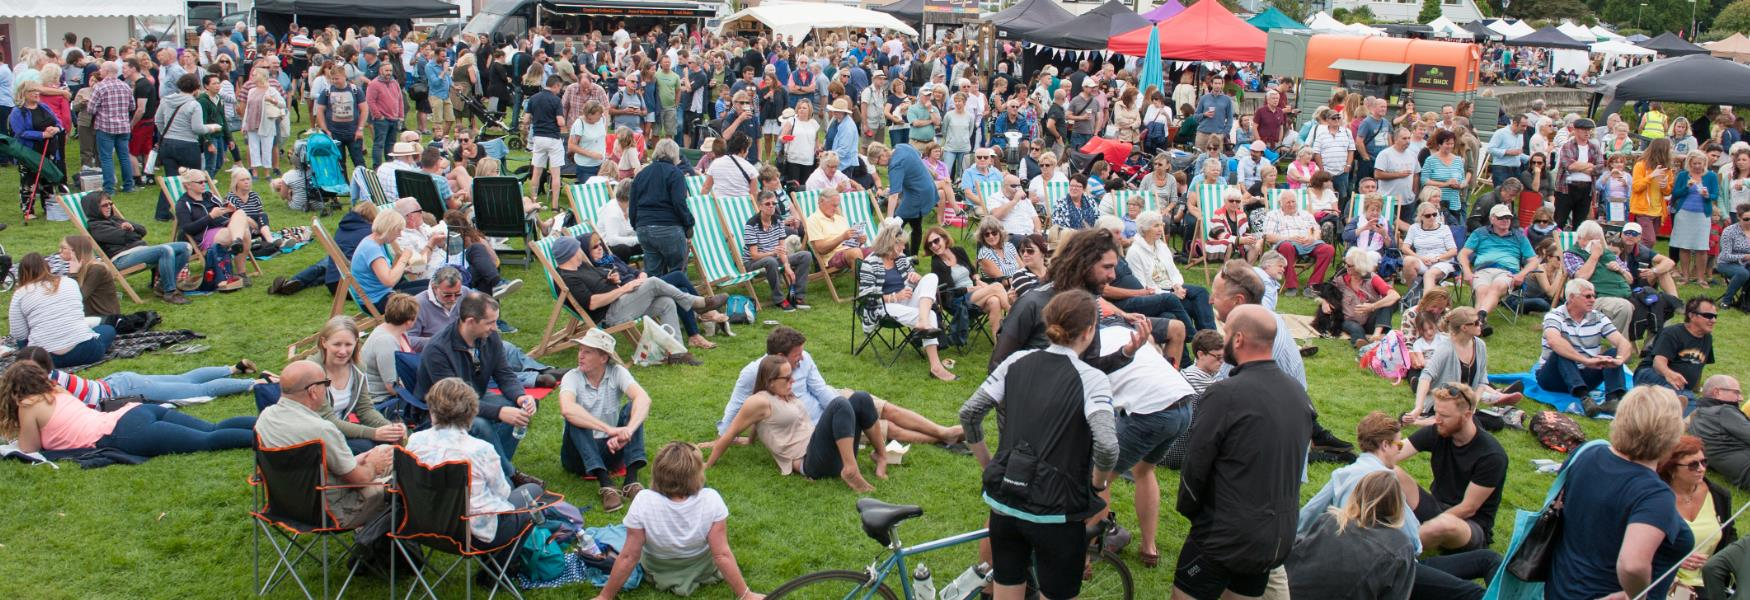 crowds of people watching live music at event in the new forest